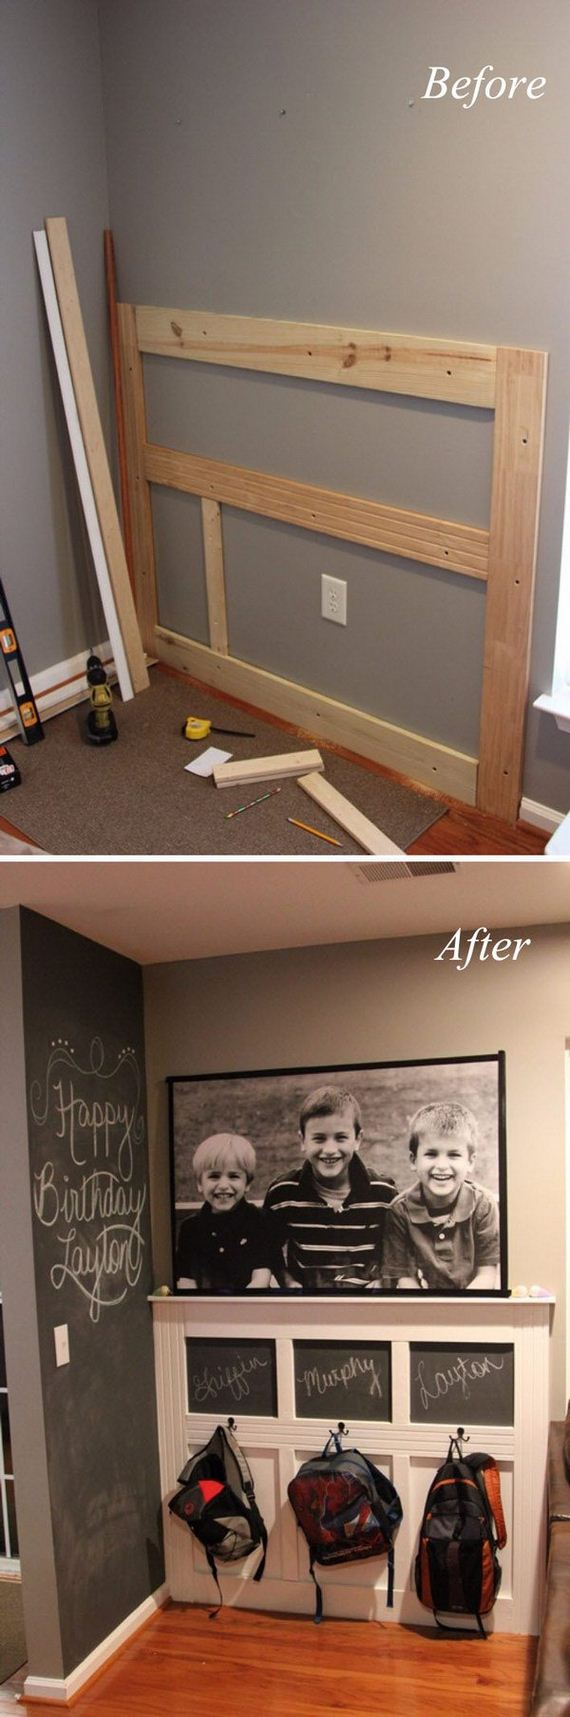 07-amazing-entryway-makeover